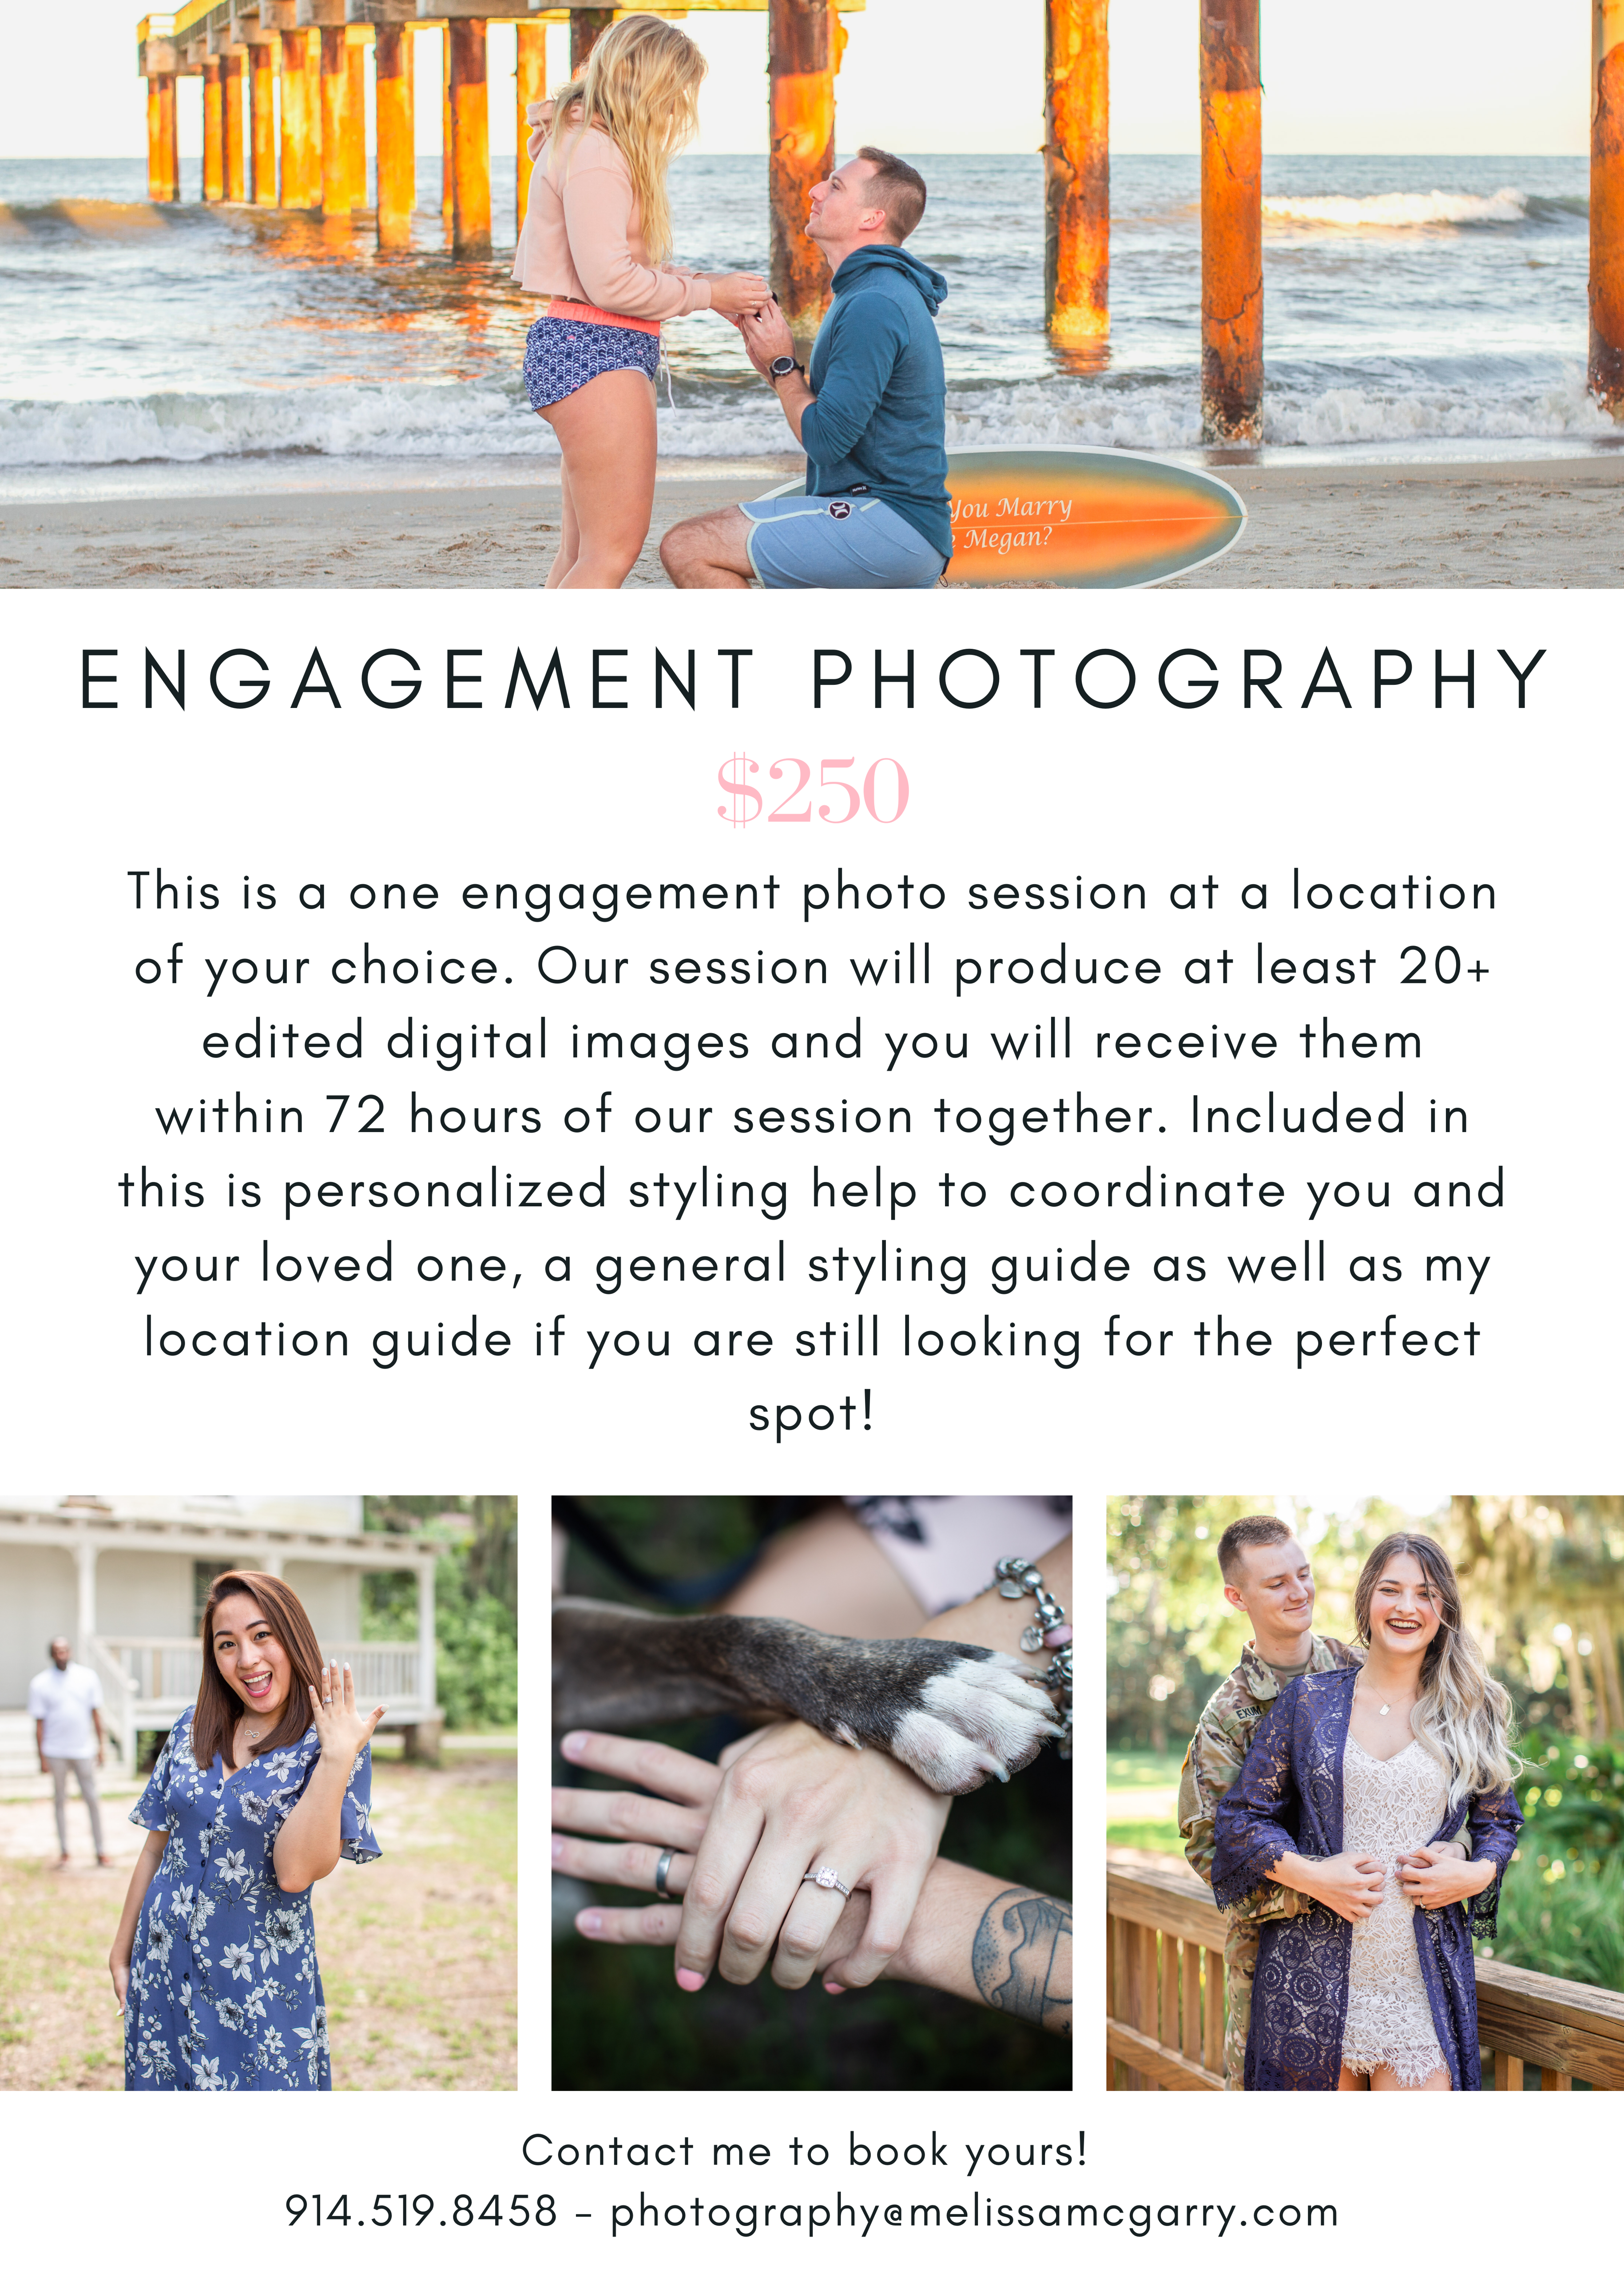 White Wedding Photography Flyer